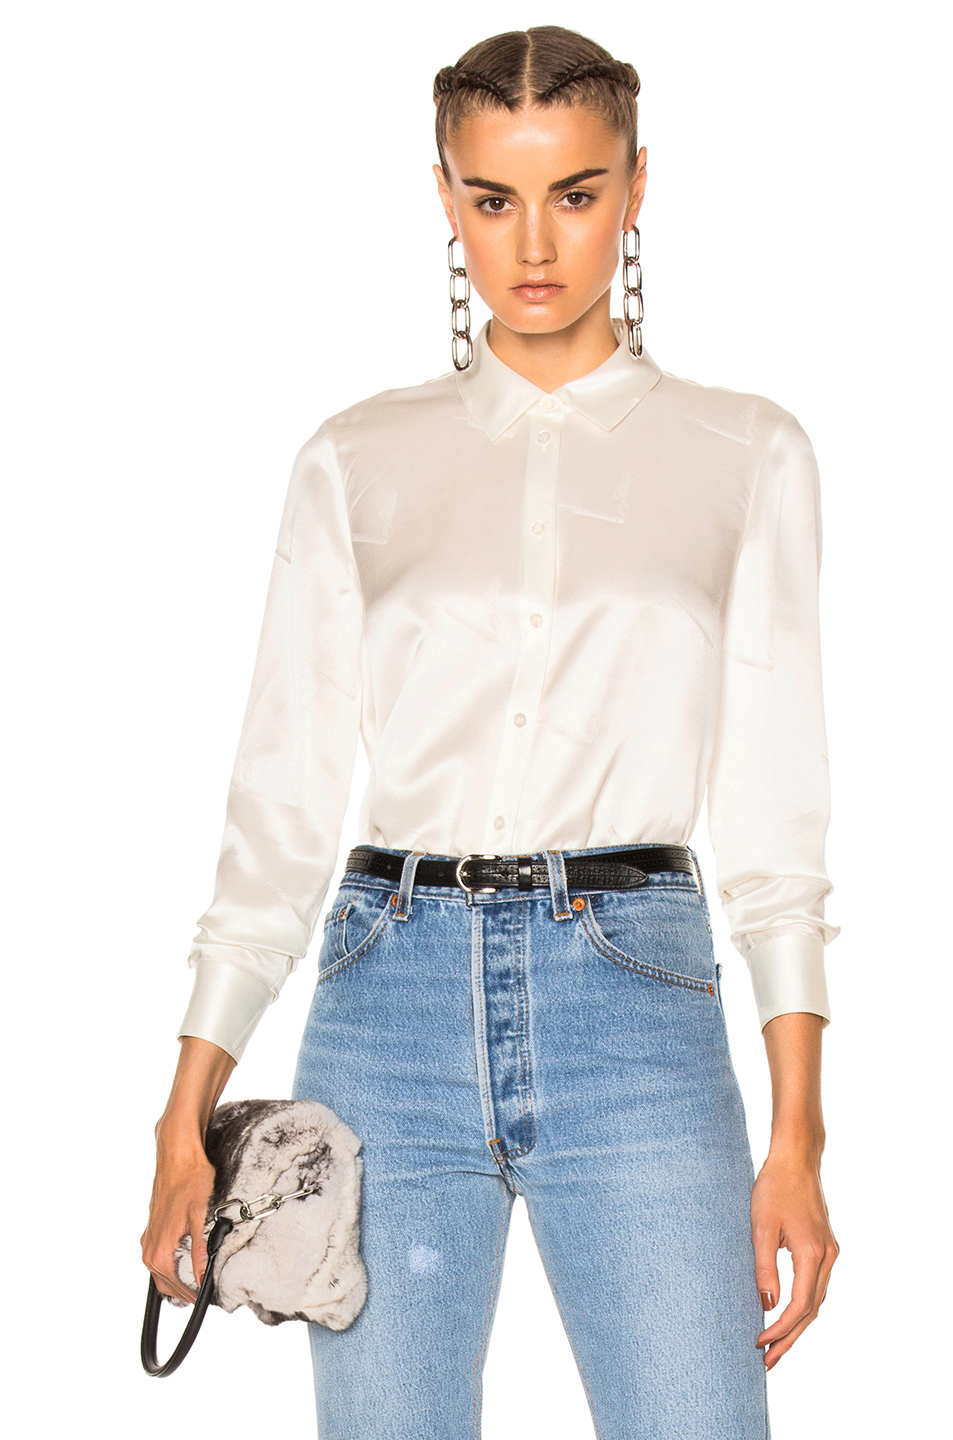 Alexander Wang Straight Cut Button Down Top in White